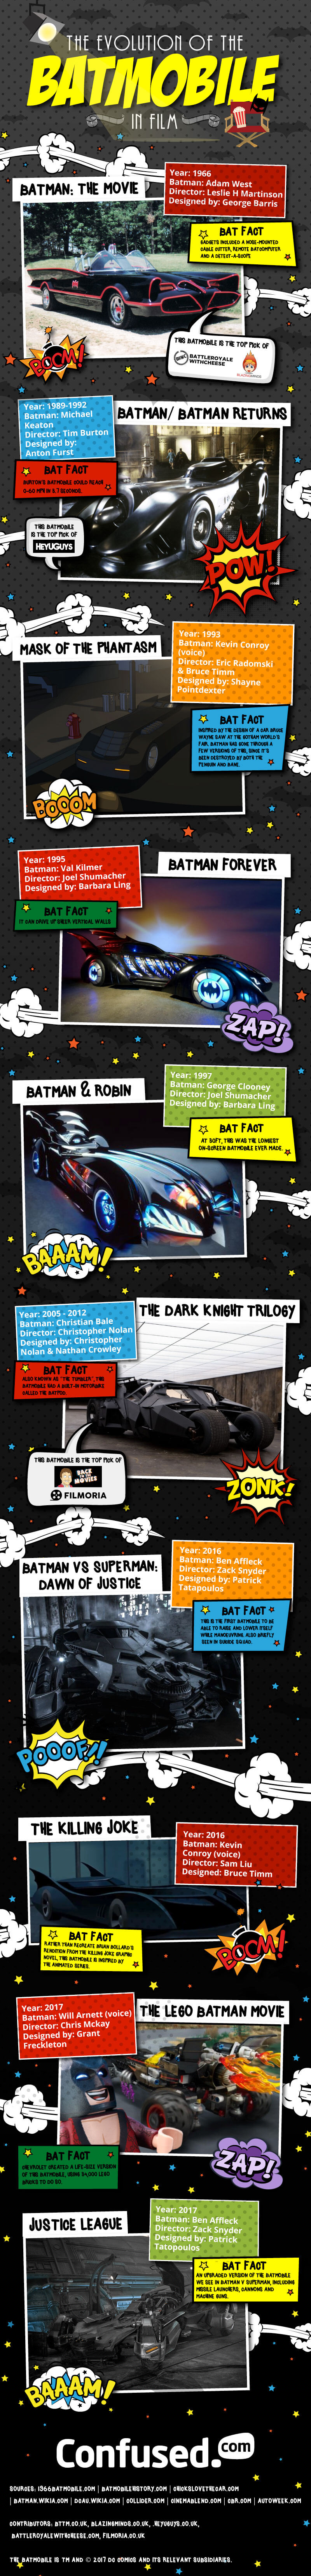 The evolution of the Batmobile in film - infographic by Confused.com